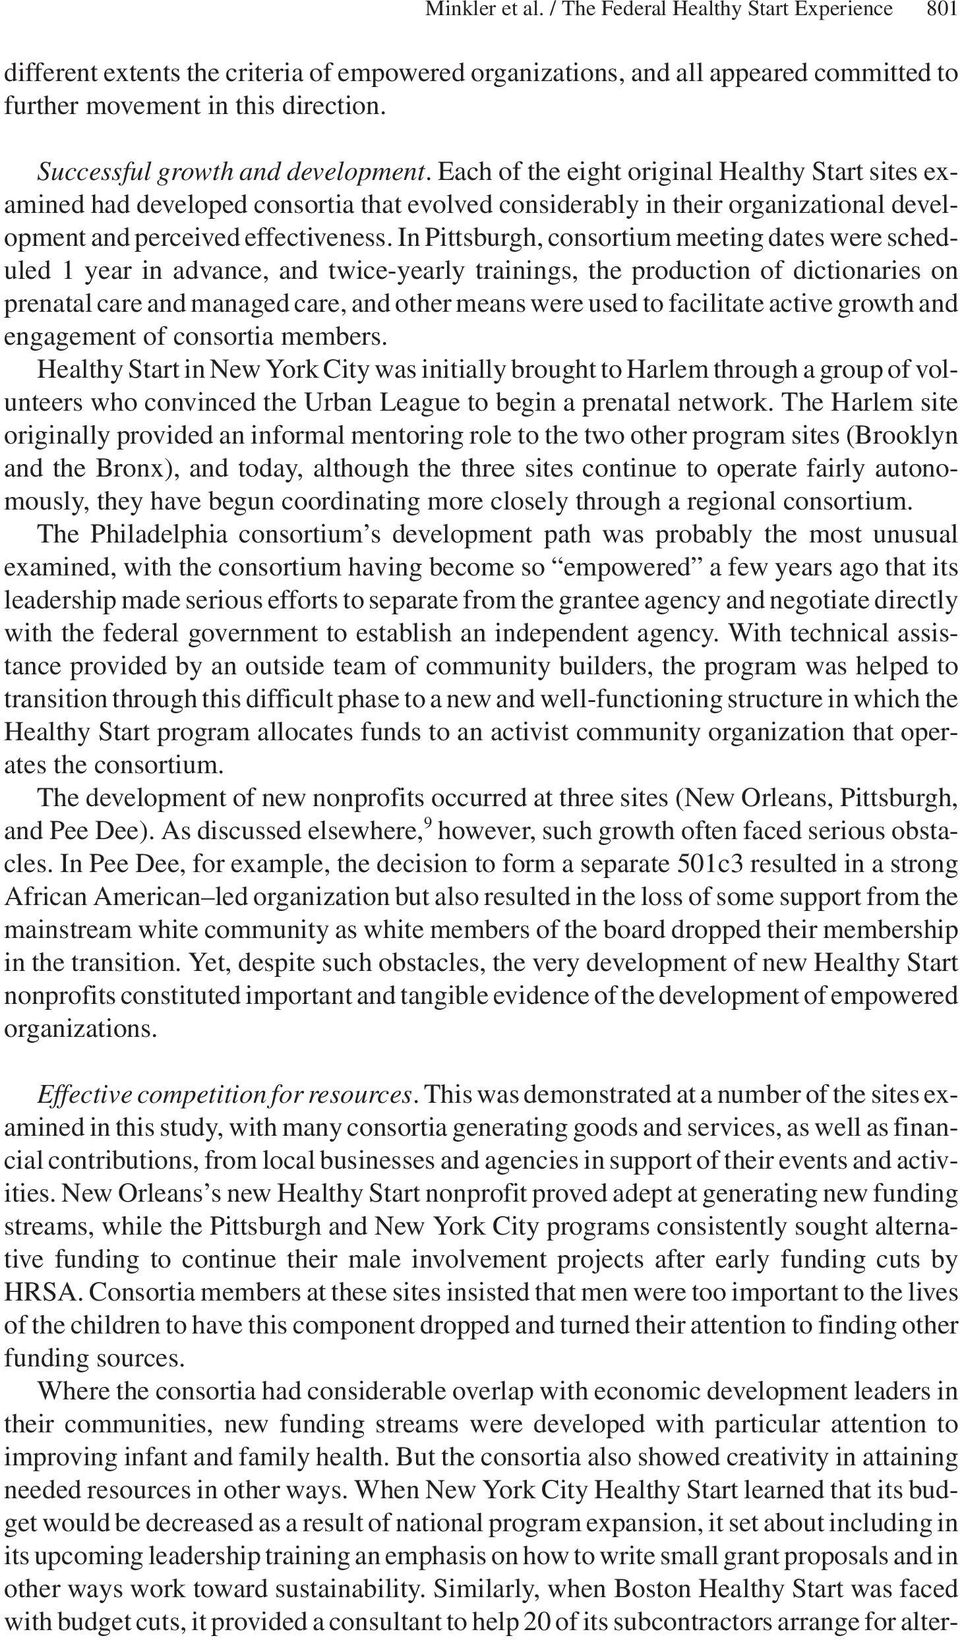 Each of the eight original Healthy Start sites examined had developed consortia that evolved considerably in their organizational development and perceived effectiveness.